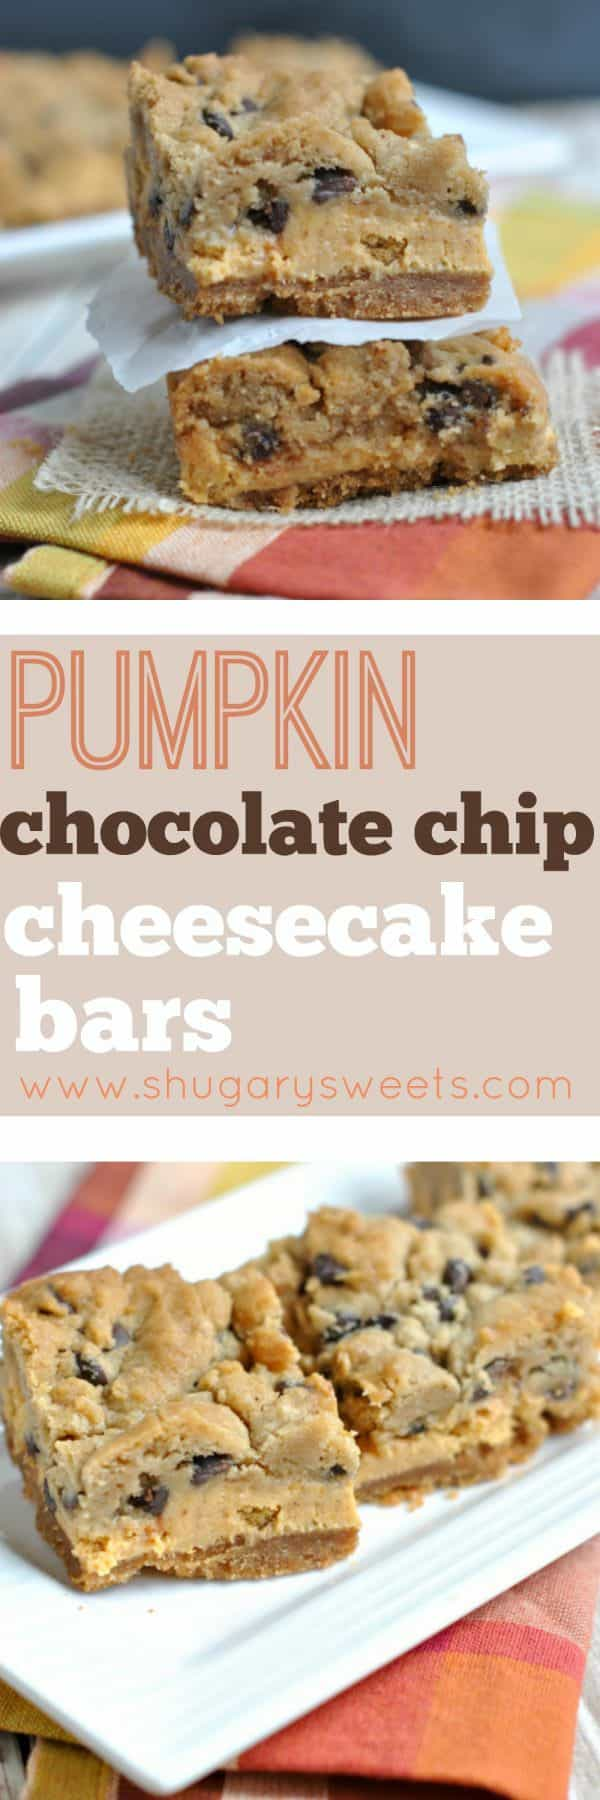 The most delicious layered cookie bars you'll eat this year! Graham cracker crust topped with a creamy pumpkin cheesecake and chocolate chip cookie dough. Baked to perfection, these Pumpkin Chocolate Chip Cheesecake Bars NEED to be on your dessert table.